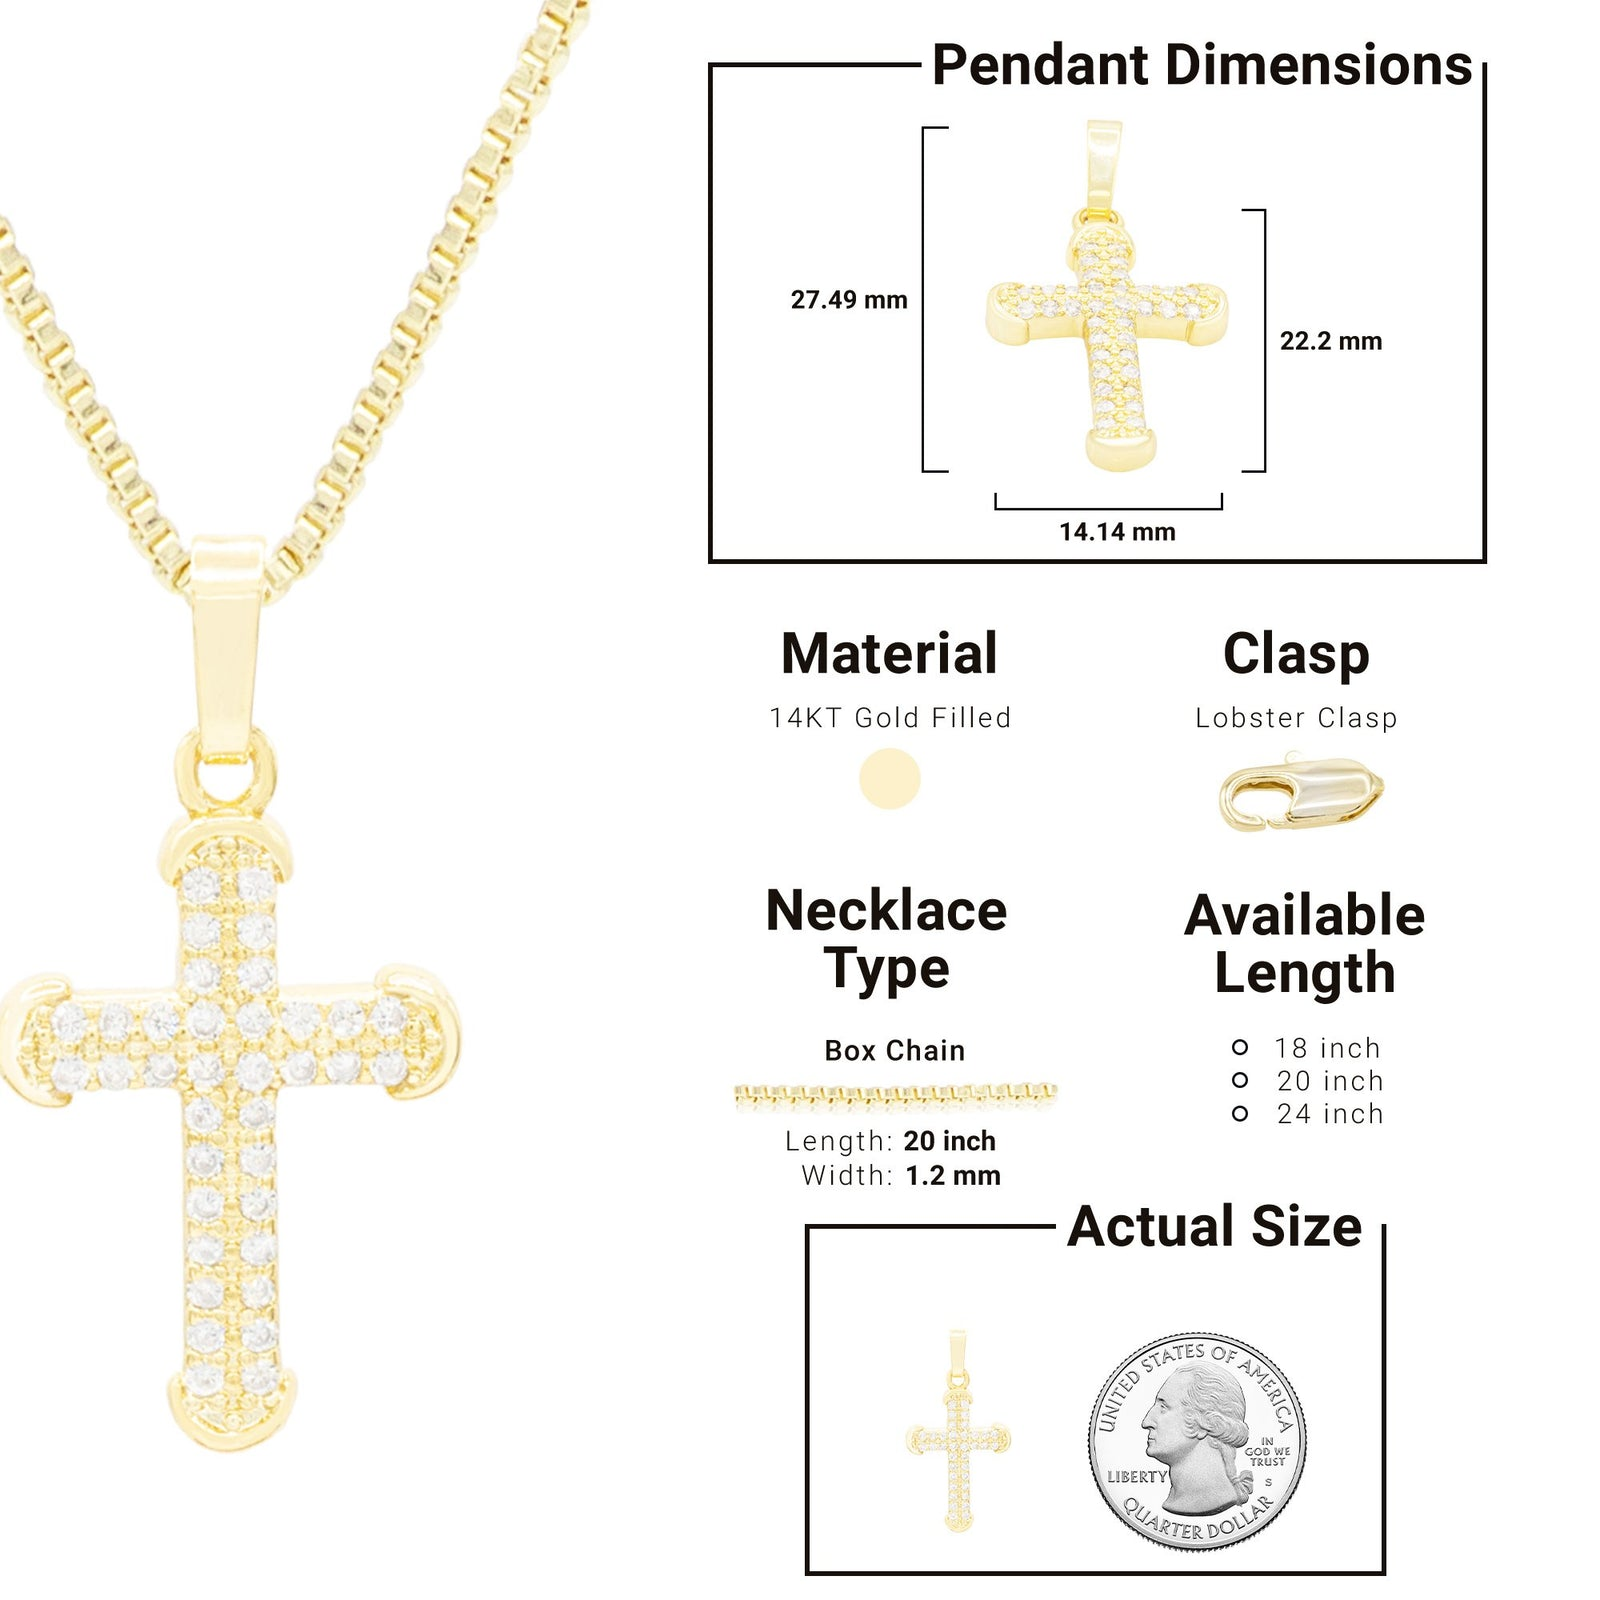 CZ Stone Accurate Cross Cubic Zirconia Pendant With Necklace Set 14K Gold Filled